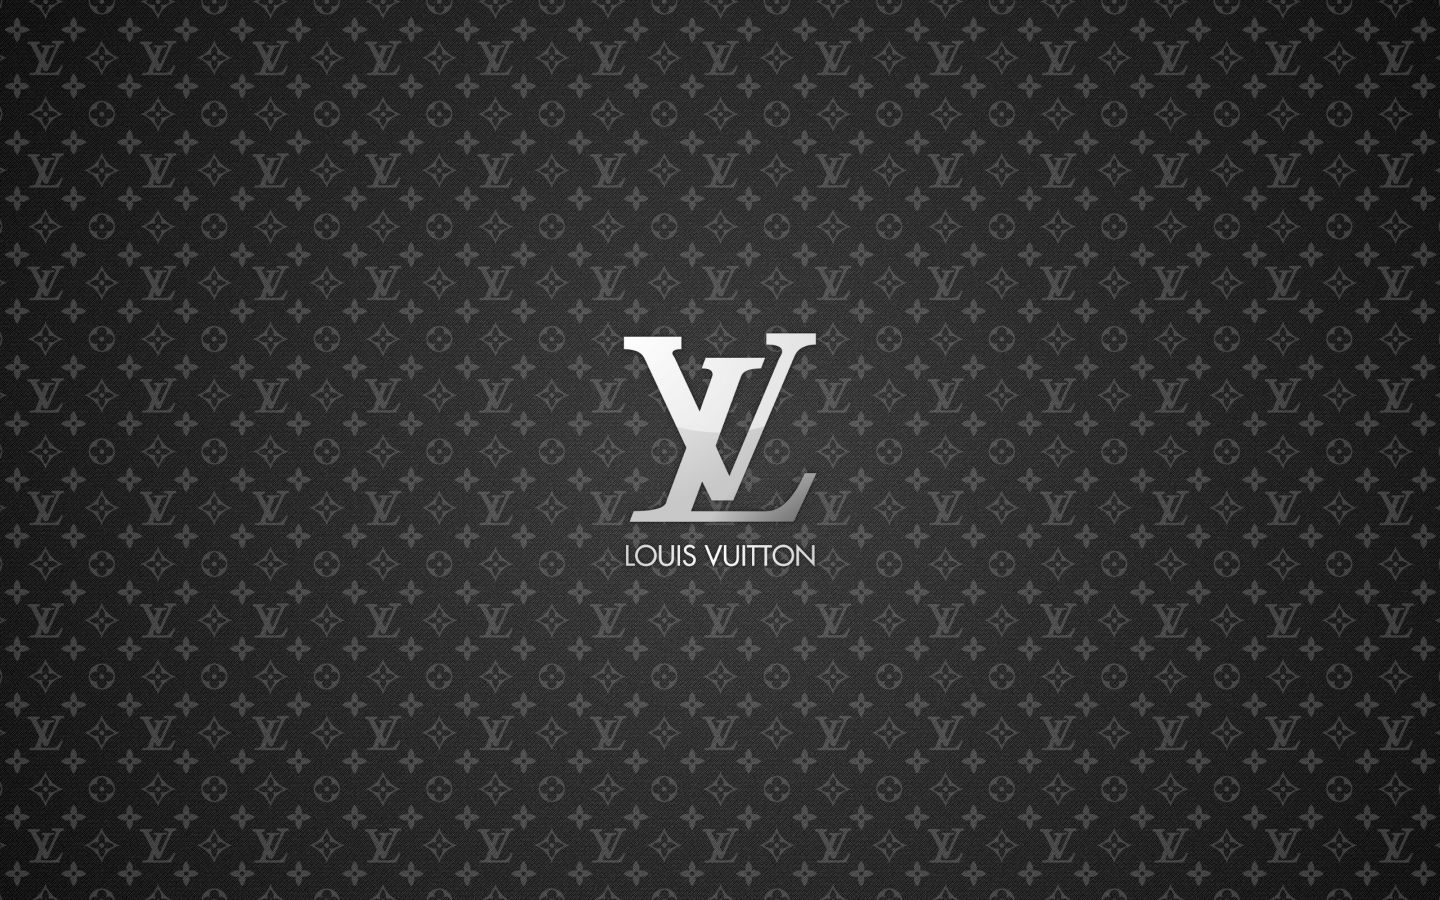 Louis Vuitton Macbook Pro Wallpaper Hd Projects To Try Pinterest